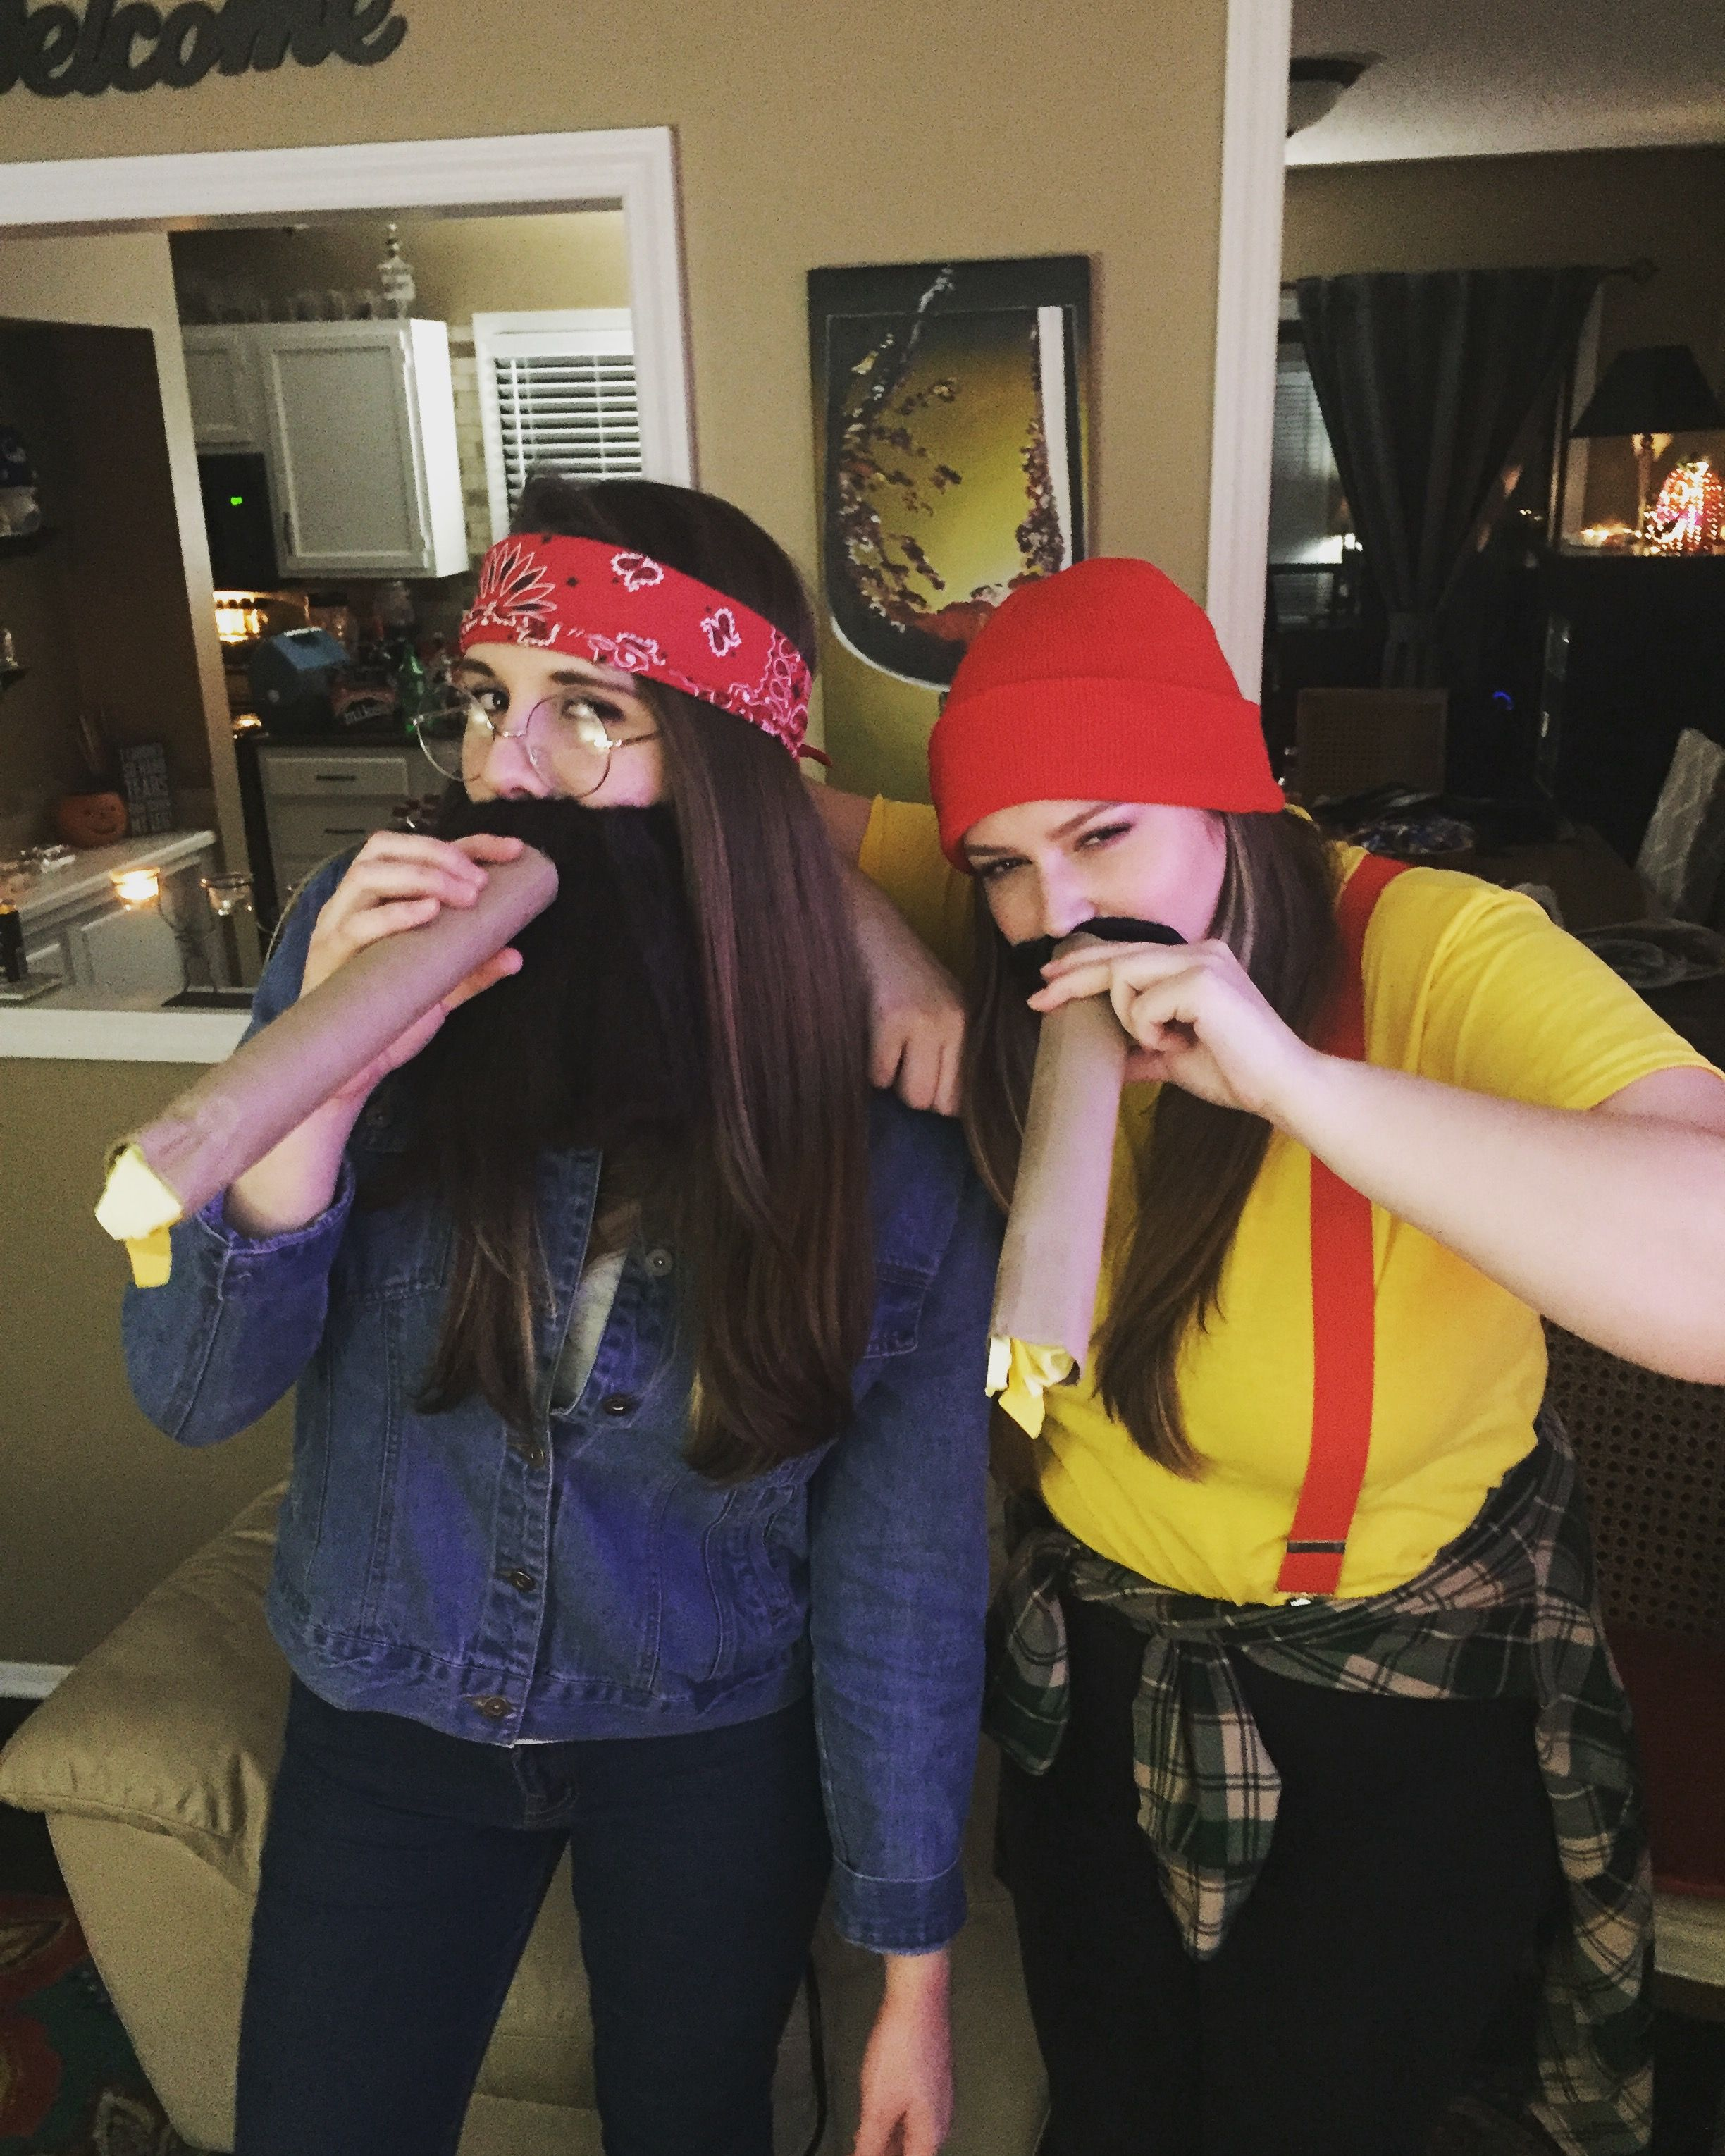 Cheech and Chong Halloween costume | Can't stop won't stop ...